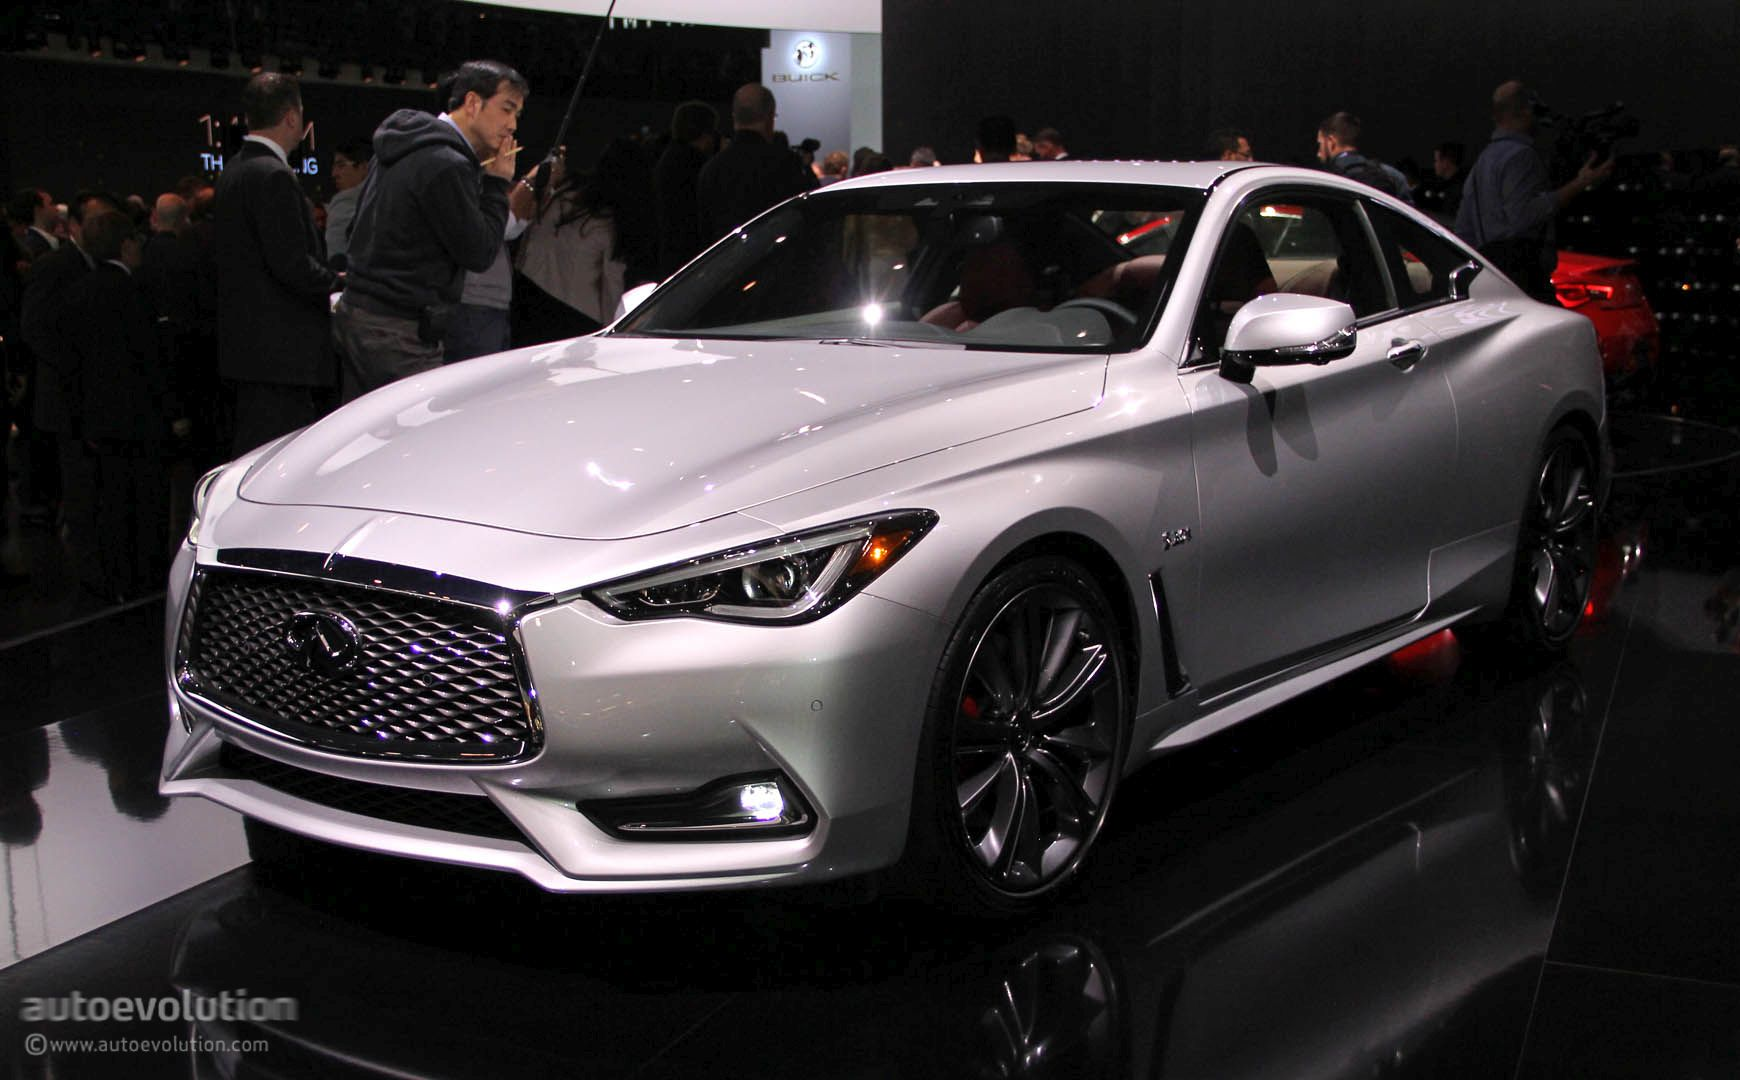 2017 Infiniti Q60 Coupe Hits Detroit with 400 HP V6, Moves Slightly Upmarket - autoevolution